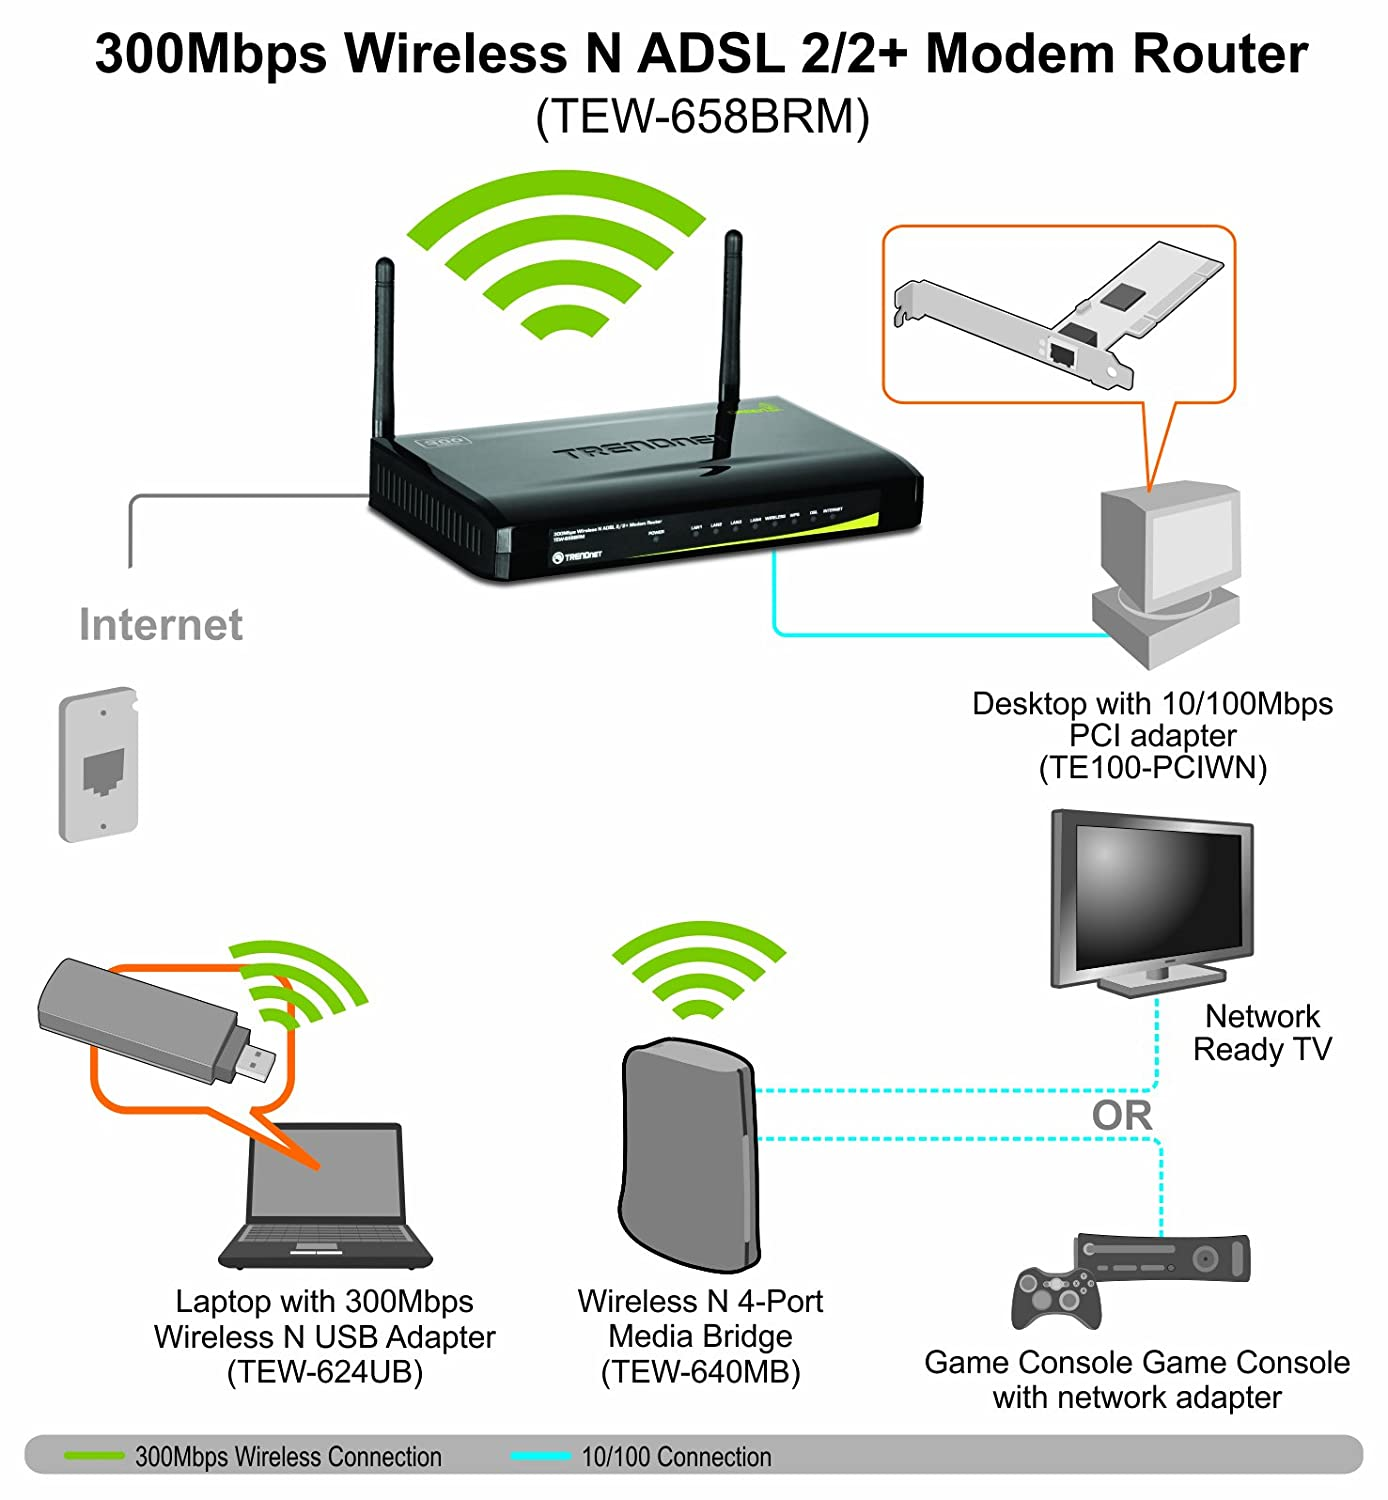 TRENDnet TEW-658BRM Wireless N 300 ADSL2+ Modem Router for Phone ...